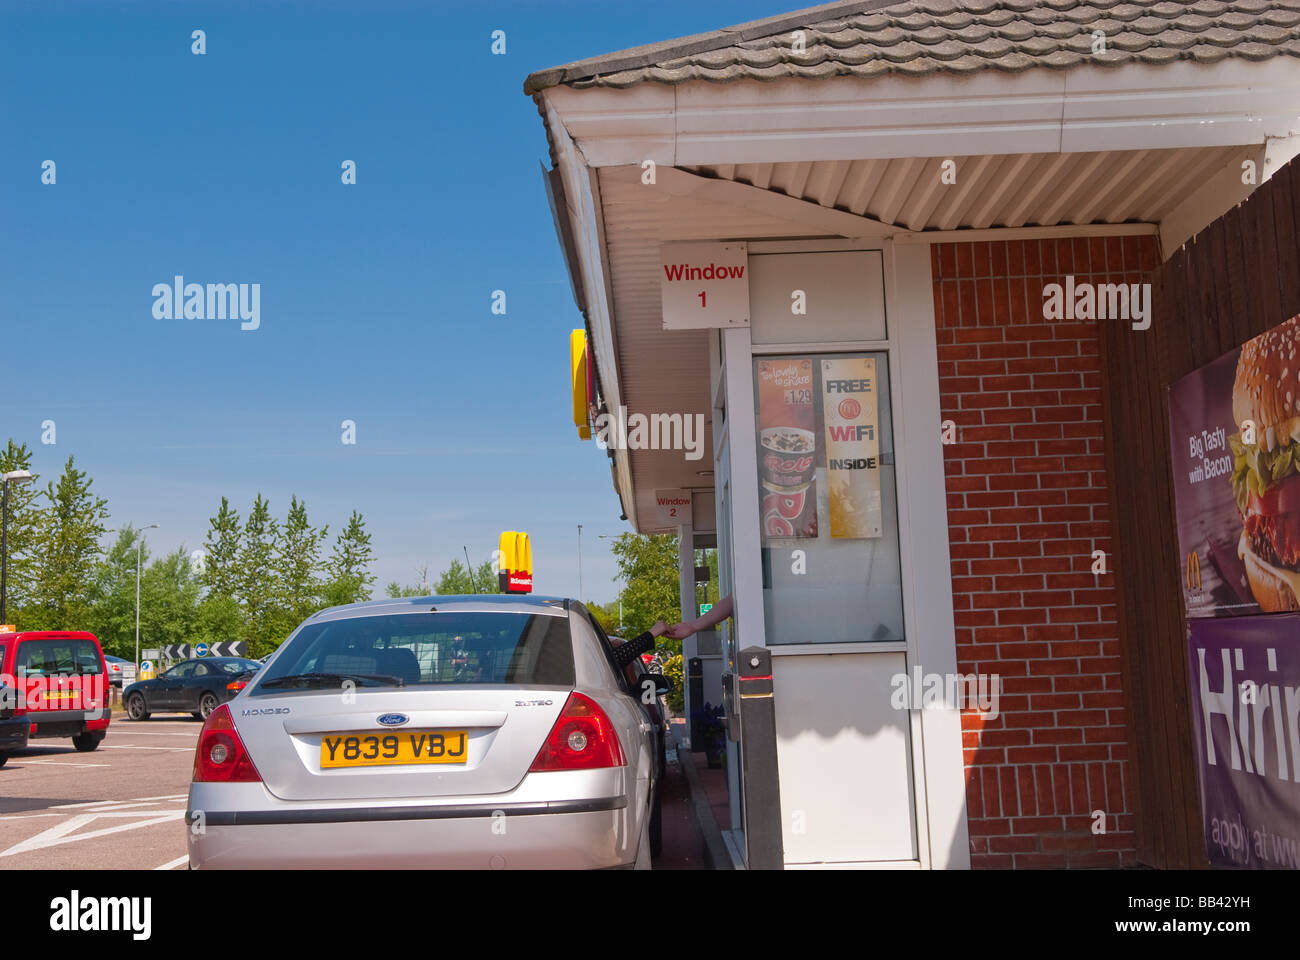 Car Mcdonalds Drive Through Restaurant Stock Photos & Car Mcdonalds ...